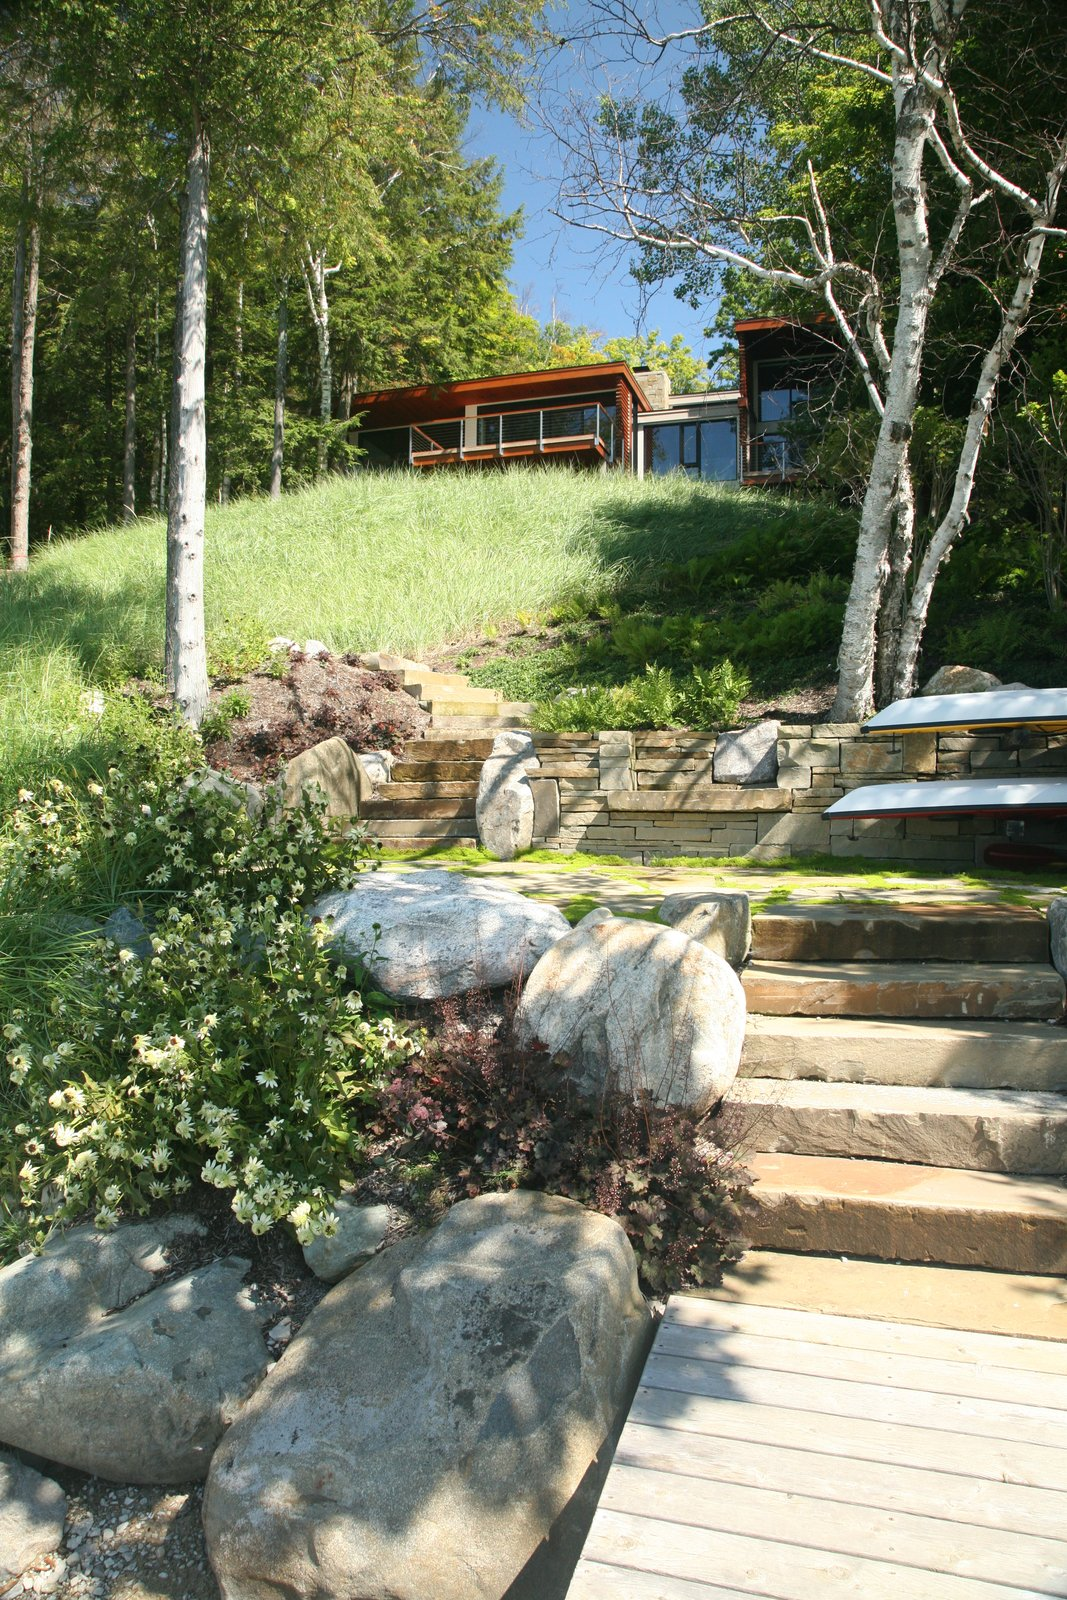 Outdoor, Back Yard, Slope, Field, Woodland, Garden, Shrubs, Trees, Grass, Walkways, Gardens, Hardscapes, Wood, Boulders, Flowers, Landscape, Large, Small, Pavers, and Stone  Best Outdoor Garden Slope Woodland Photos from Walloon Lake House